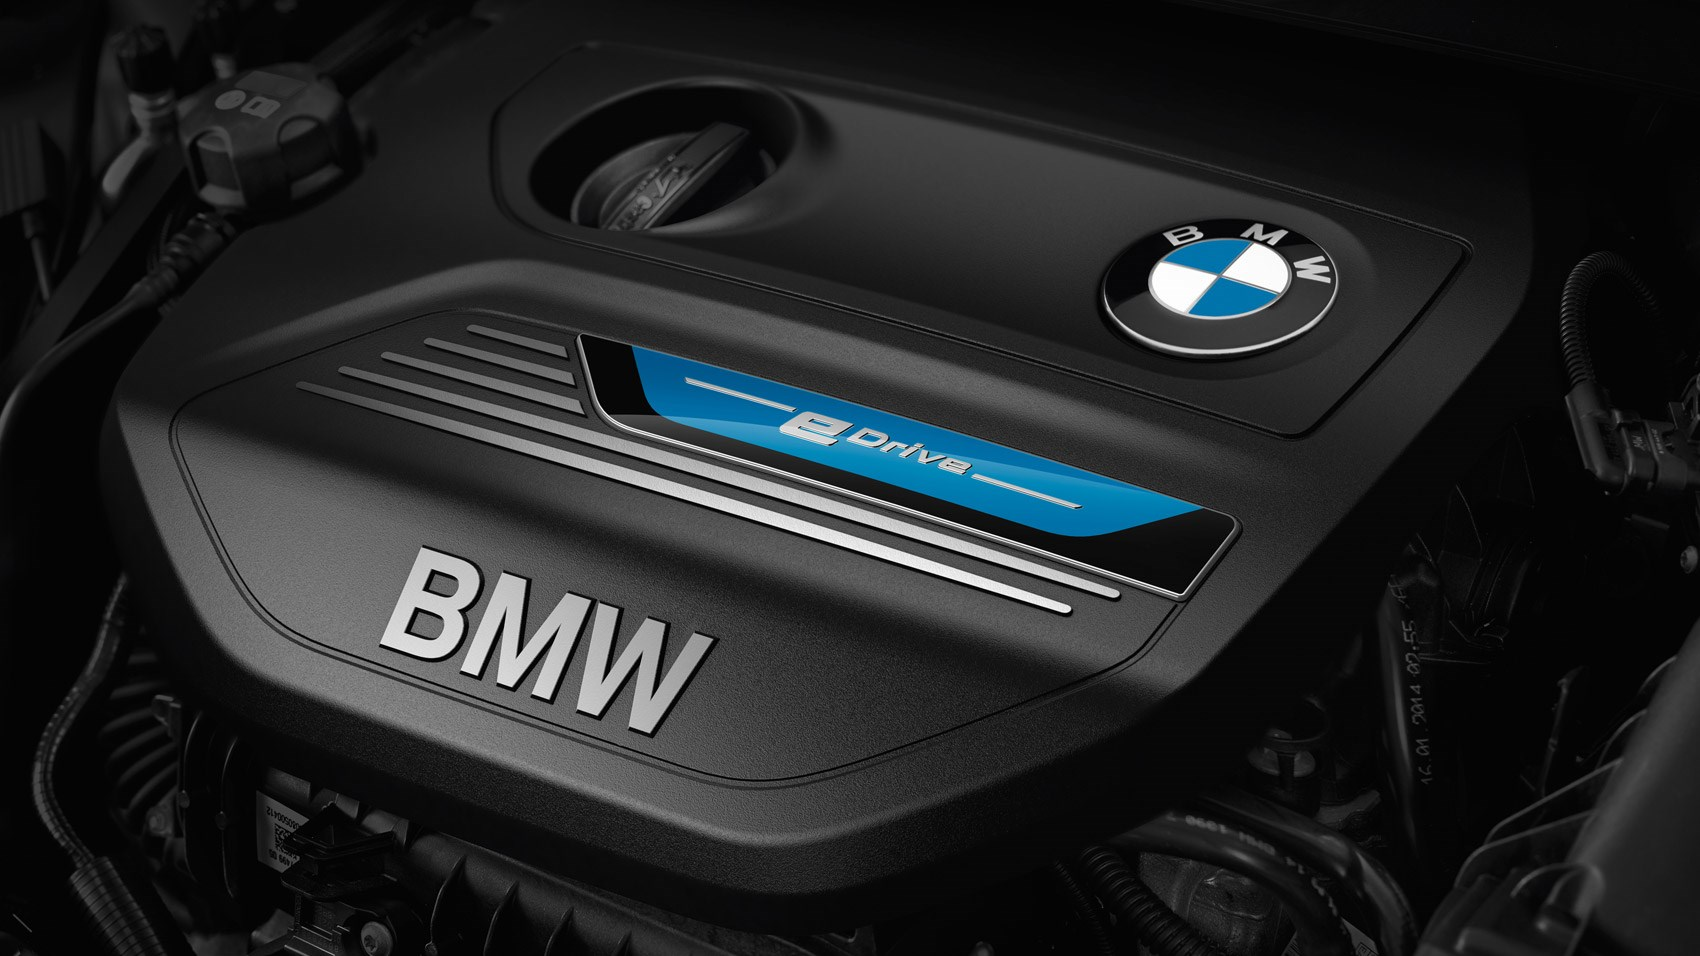 Bmw 2 Series Active Tourer 225xe 2016 Review Car Magazine Purely Electric Engine Diagram